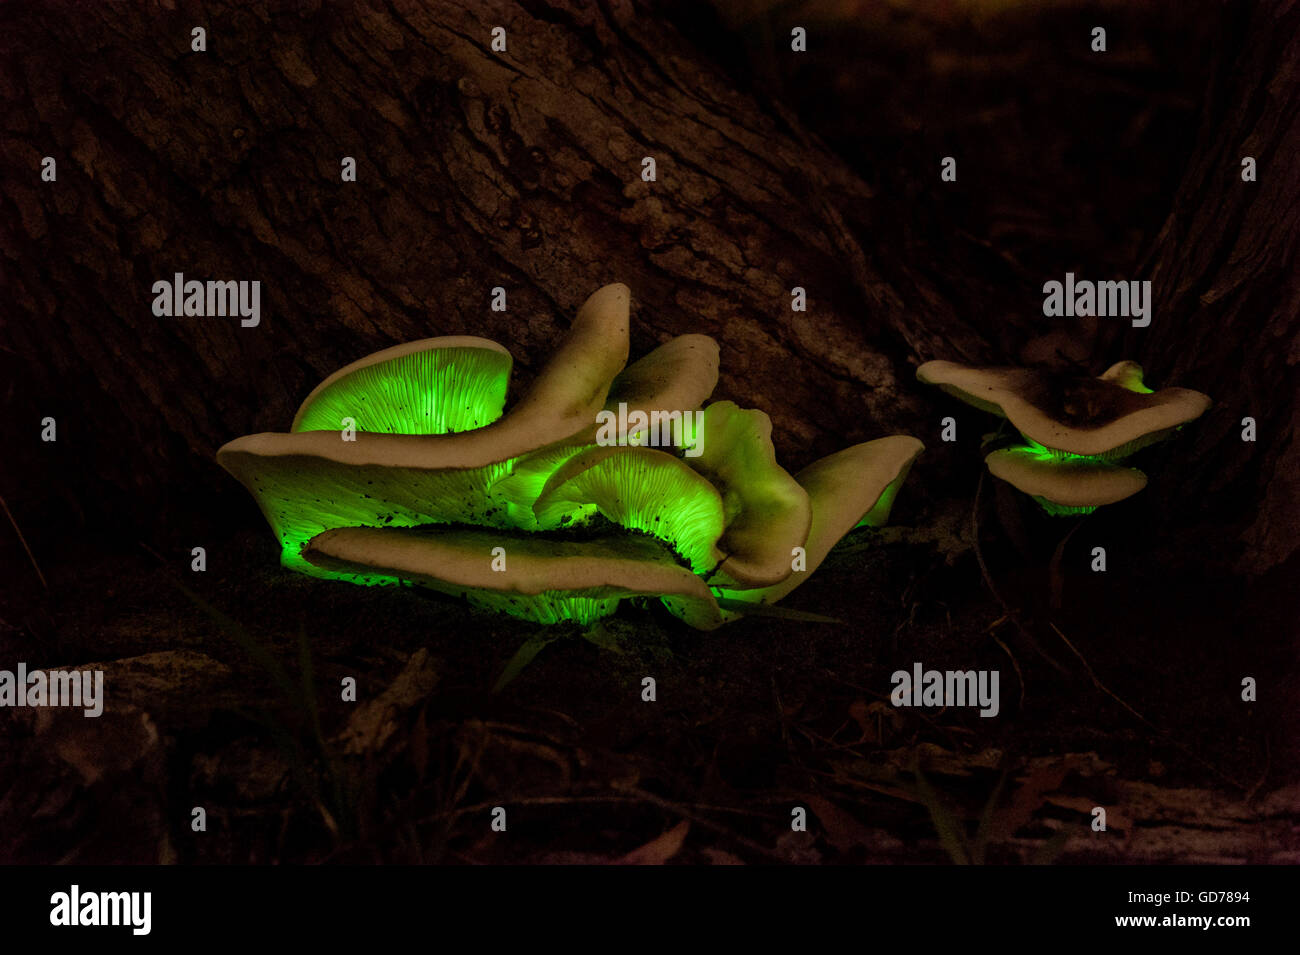 Ghost fungus glowing in the dark with bioluminescence - Stock Image